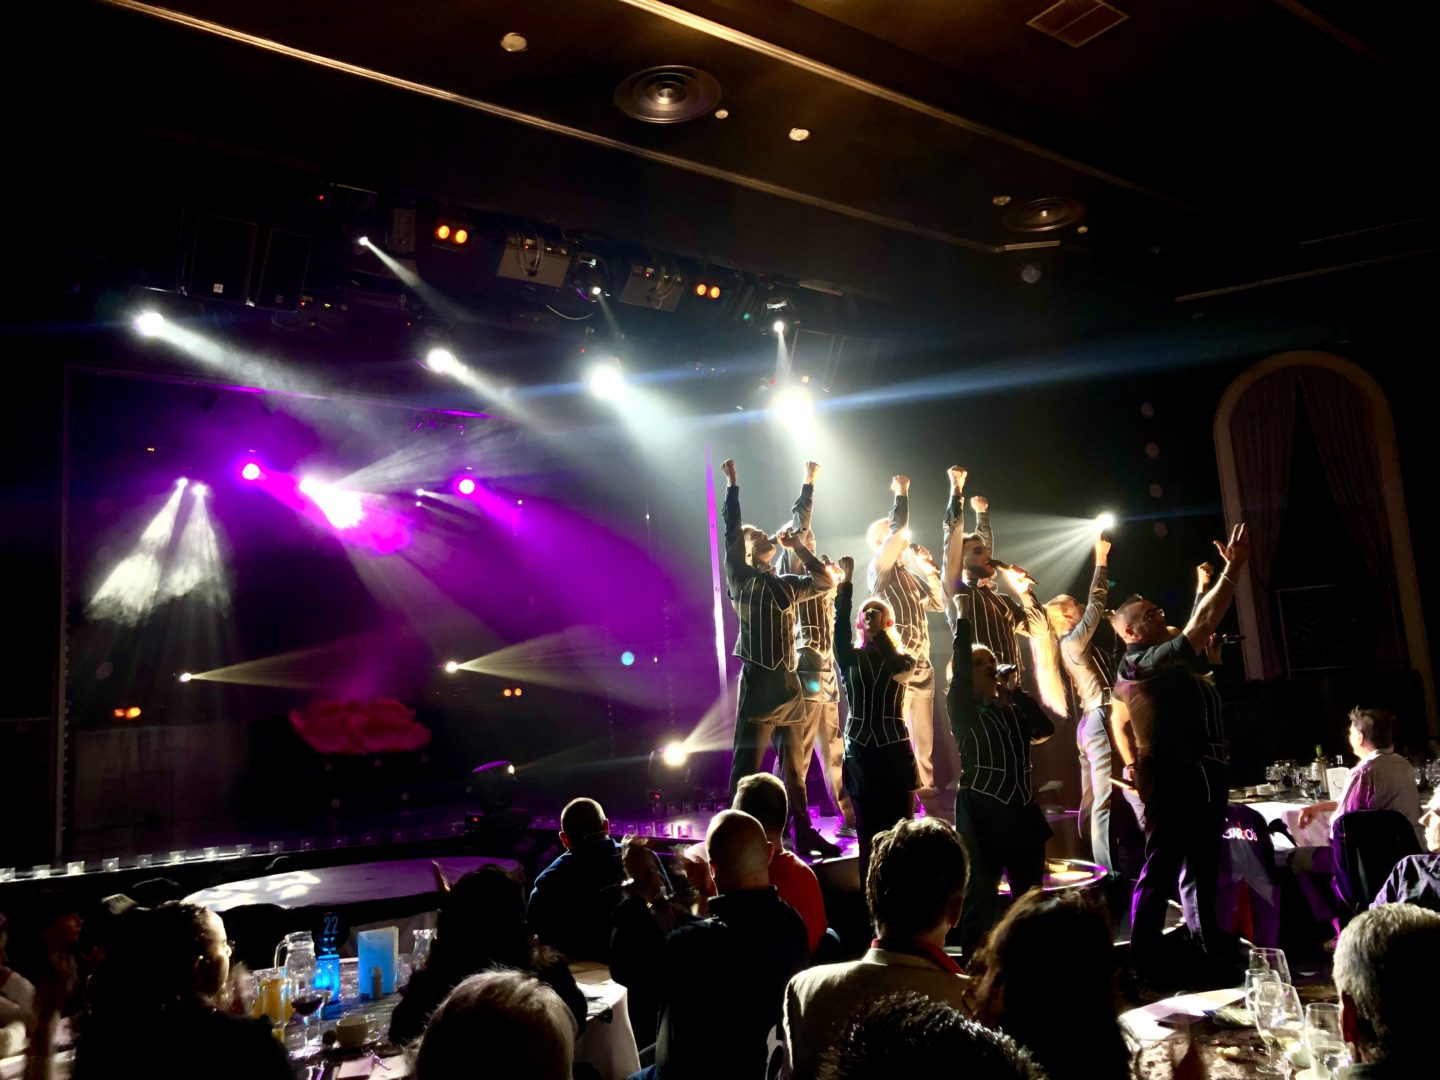 Things to do in Maspalomas and Playa del Ingles - Garbos dinner show